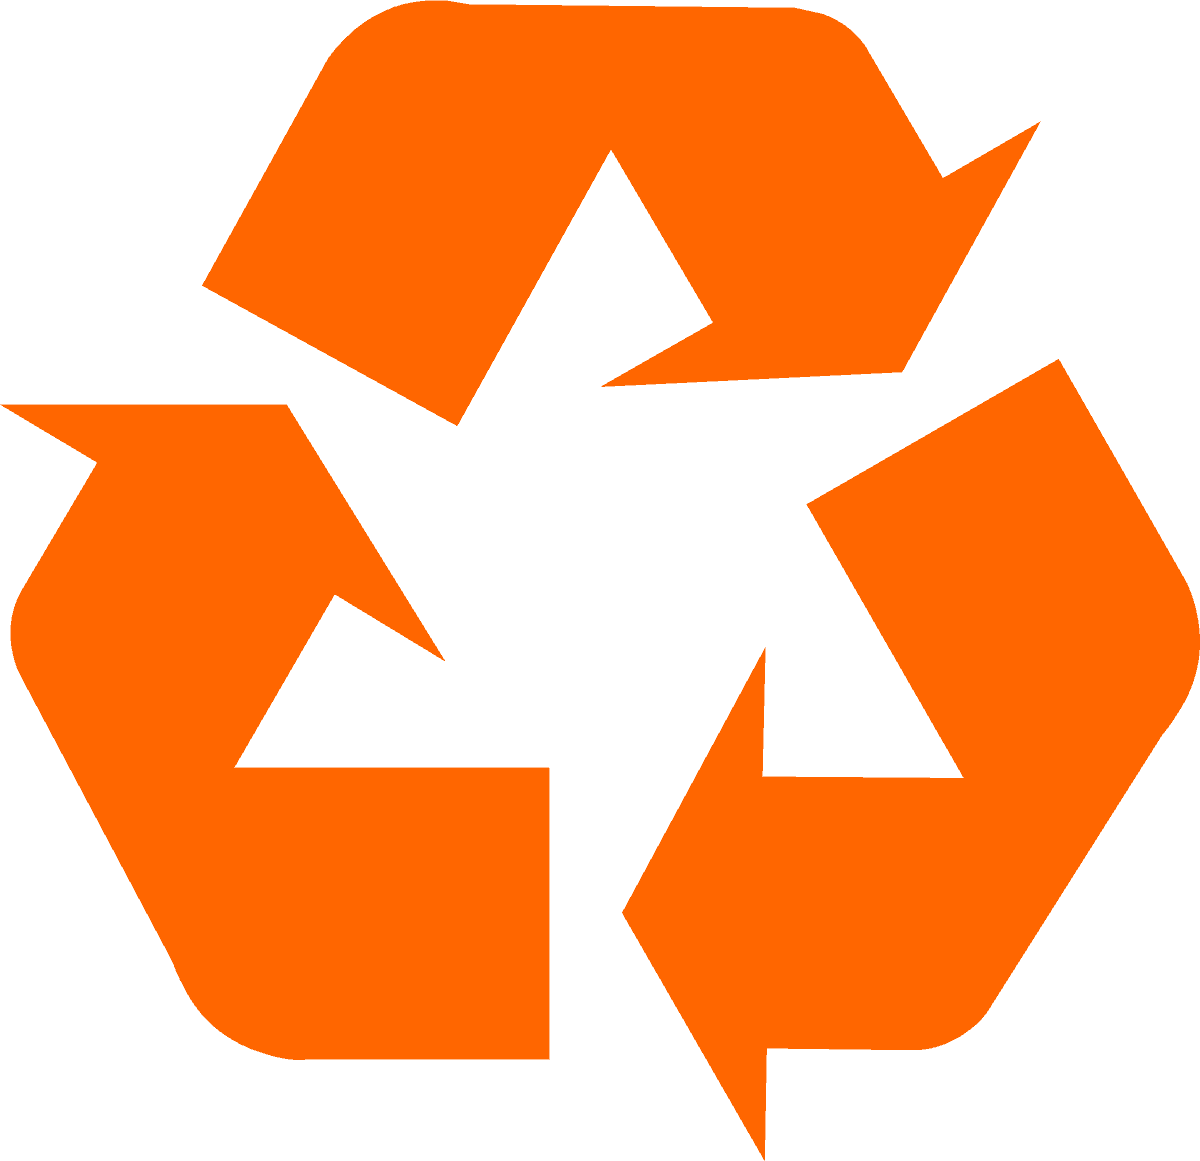 recycling-symbol-icon-solid-orange